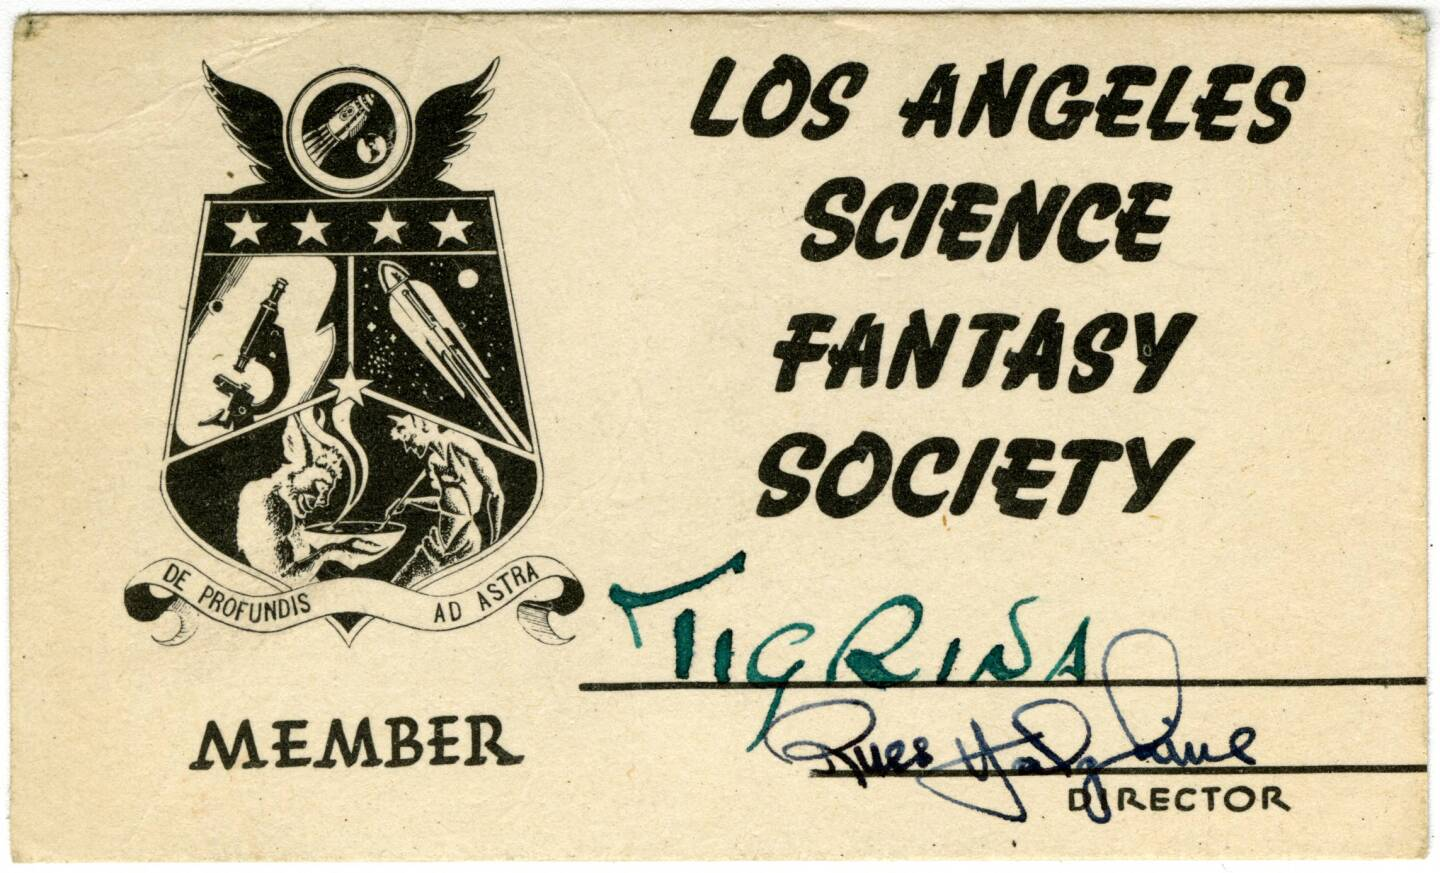 A membership card for the Los Angeles Science Fantasy Society. The member used a code name, Tigrina.